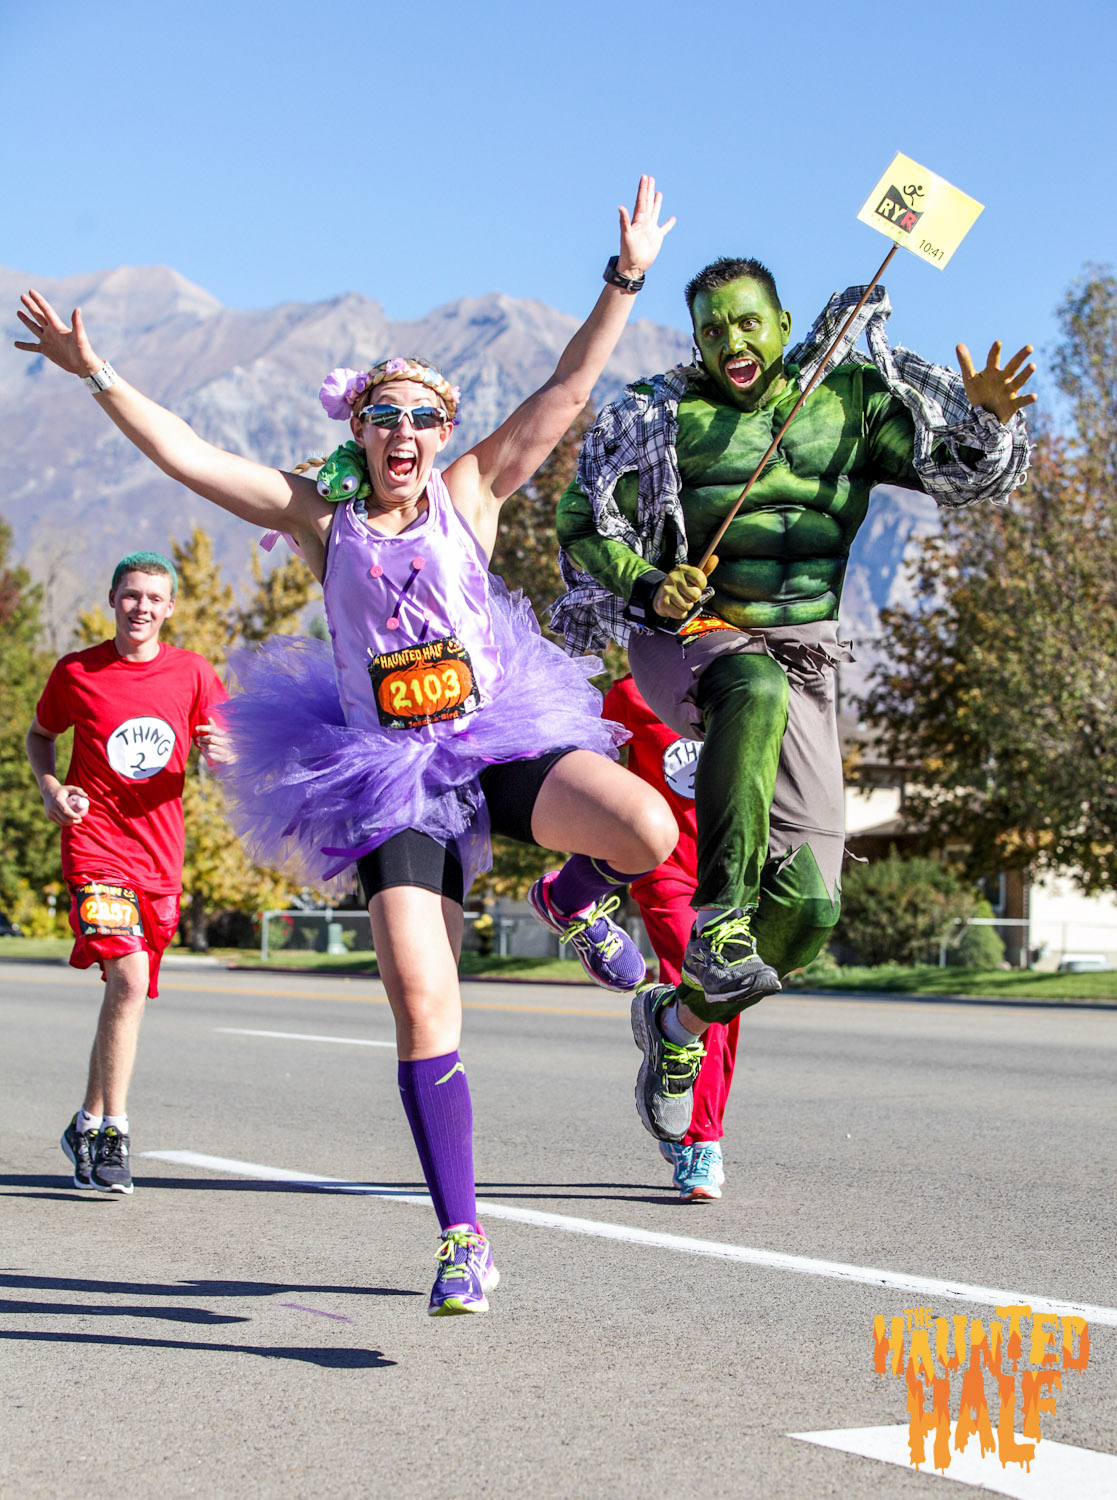 images.raceentry.com/infopages/haunted-half-provo-infopages-50.jpg